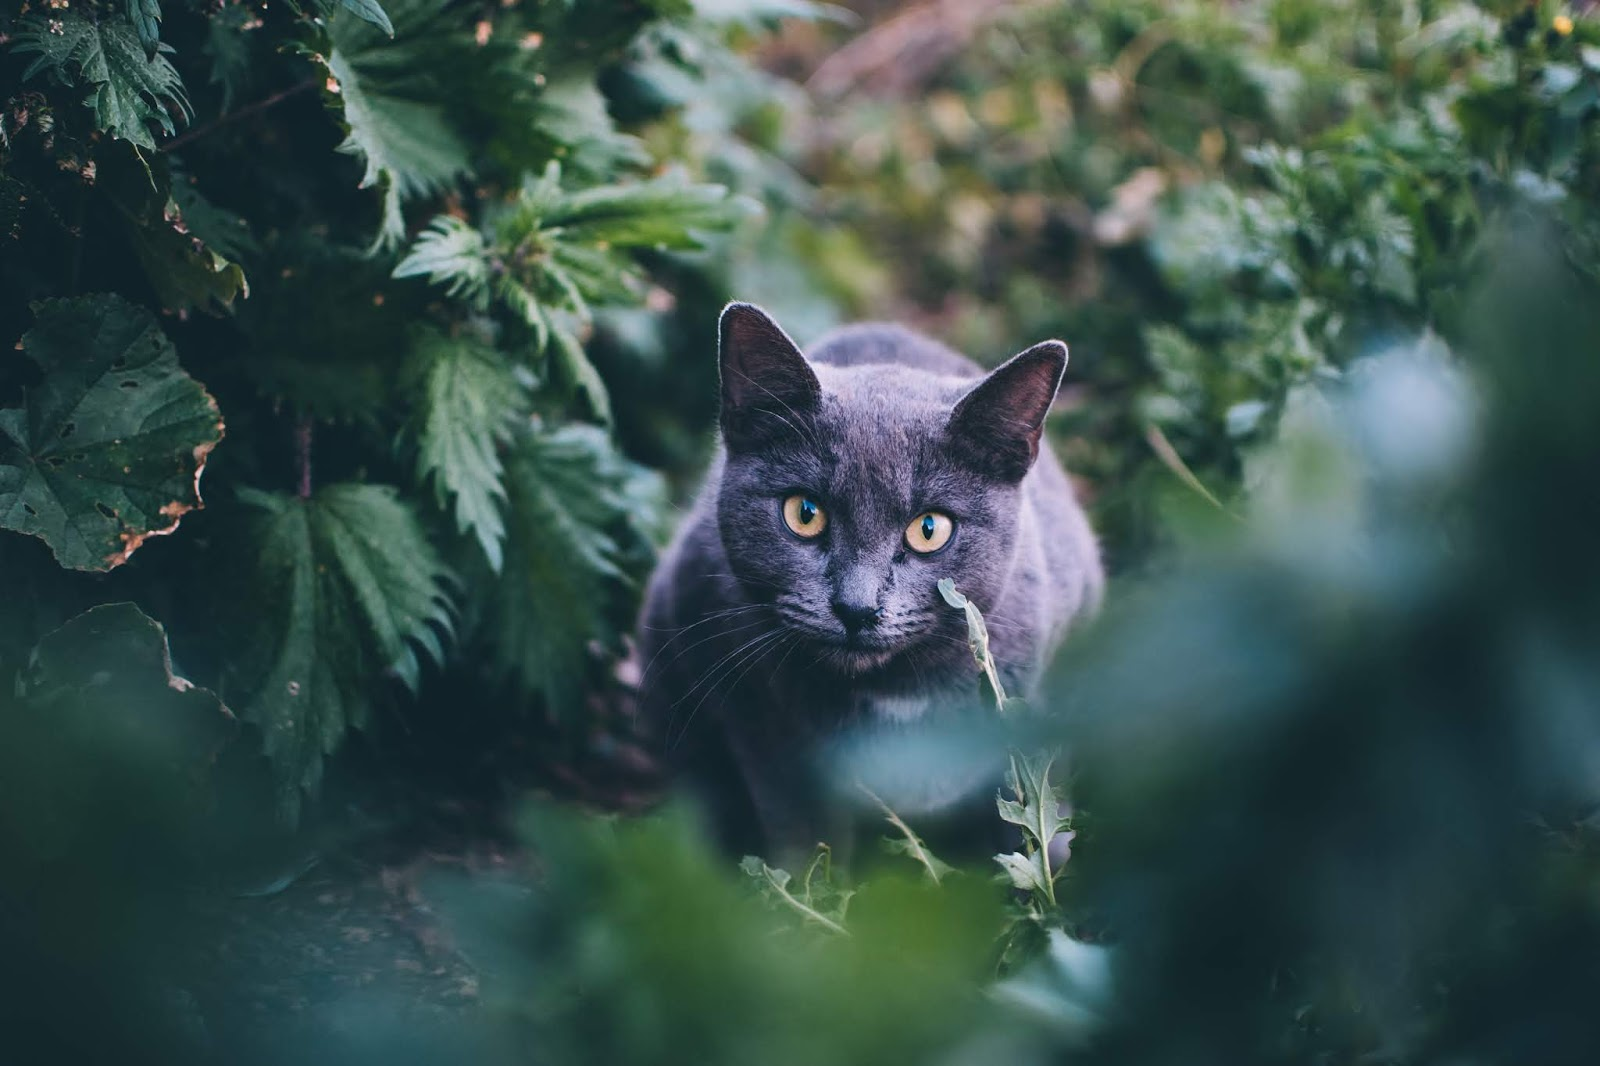 Grey short cat in the bushes,cat images